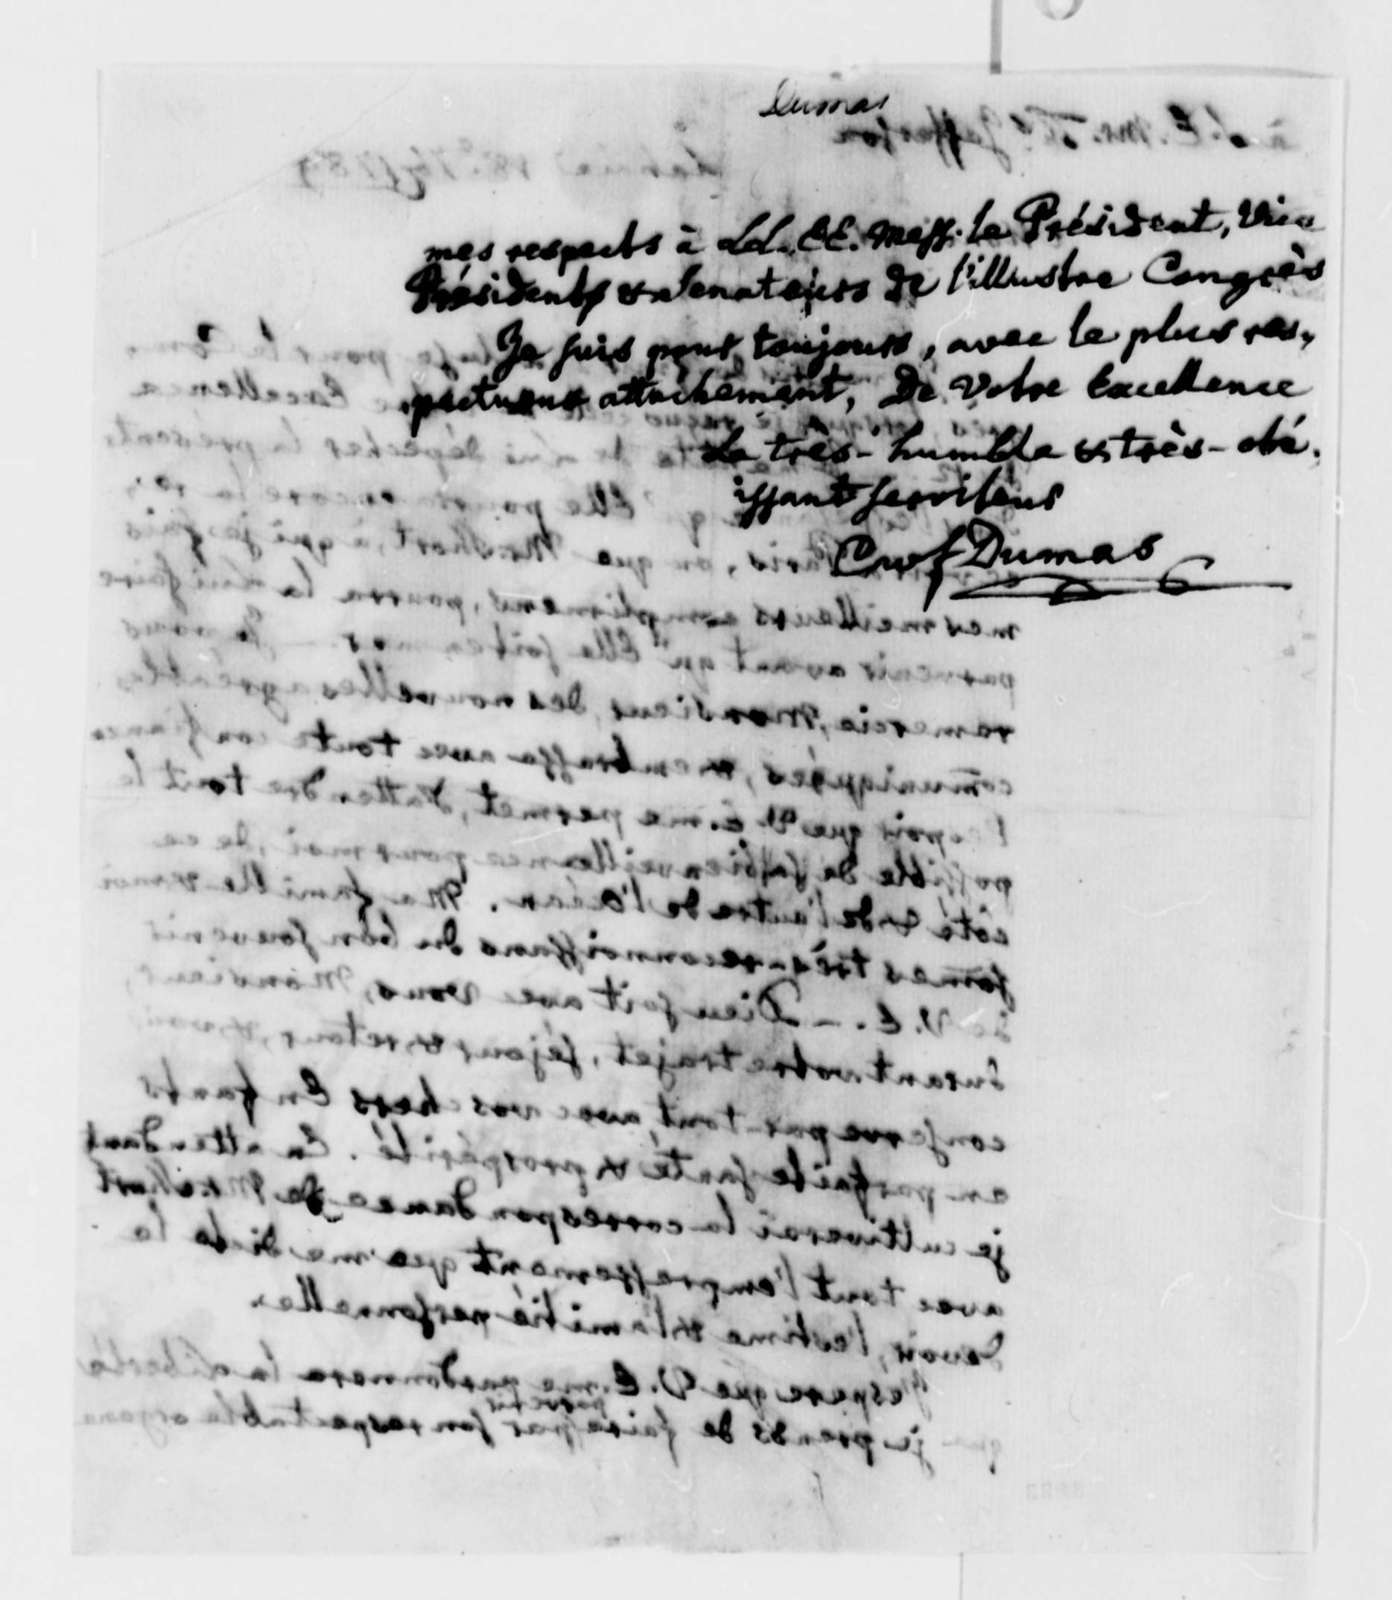 Charles W. F. Dumas to Thomas Jefferson, September 18, 1789, in French